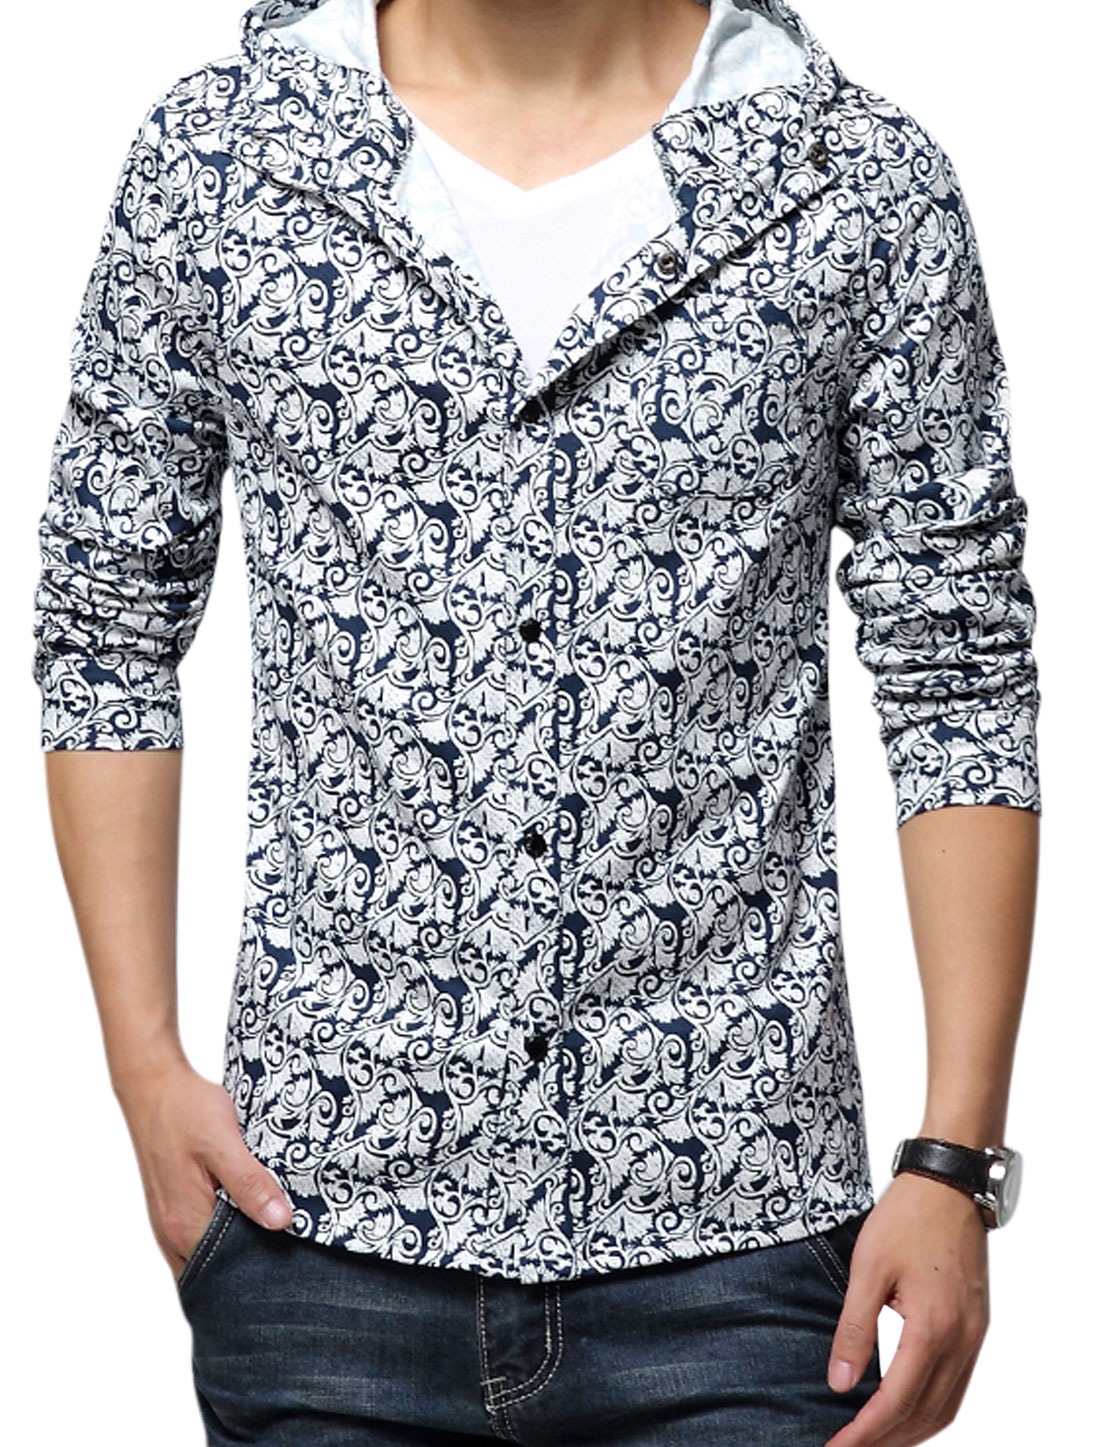 Men Hooded Novelty Prints Single Chest Pocket Button Up Jacket Navy Blue White S